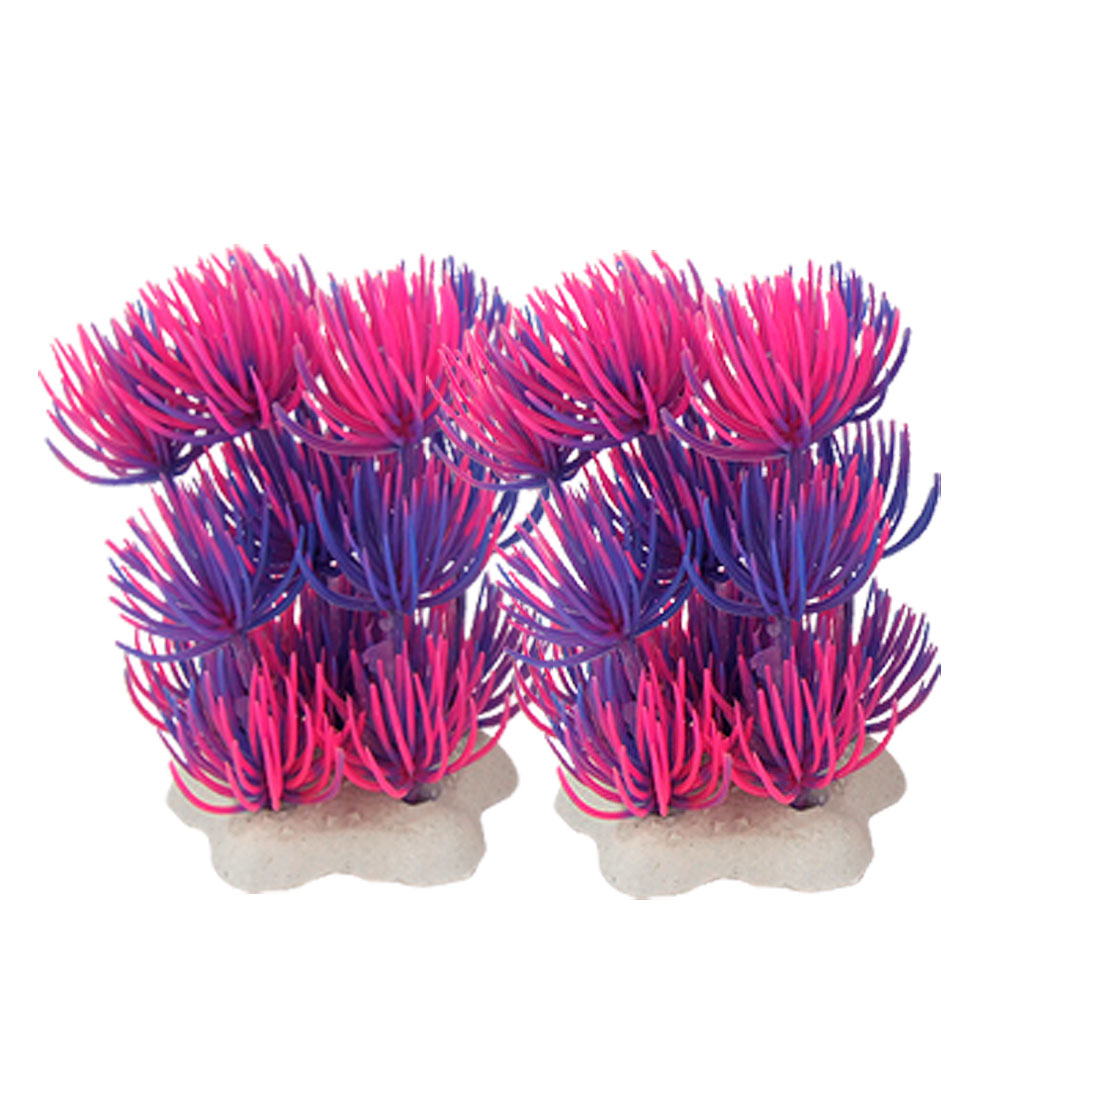 2 Pcs Blue Hot Pink Plastic Grass Decoration for Fish Tank Aquarium